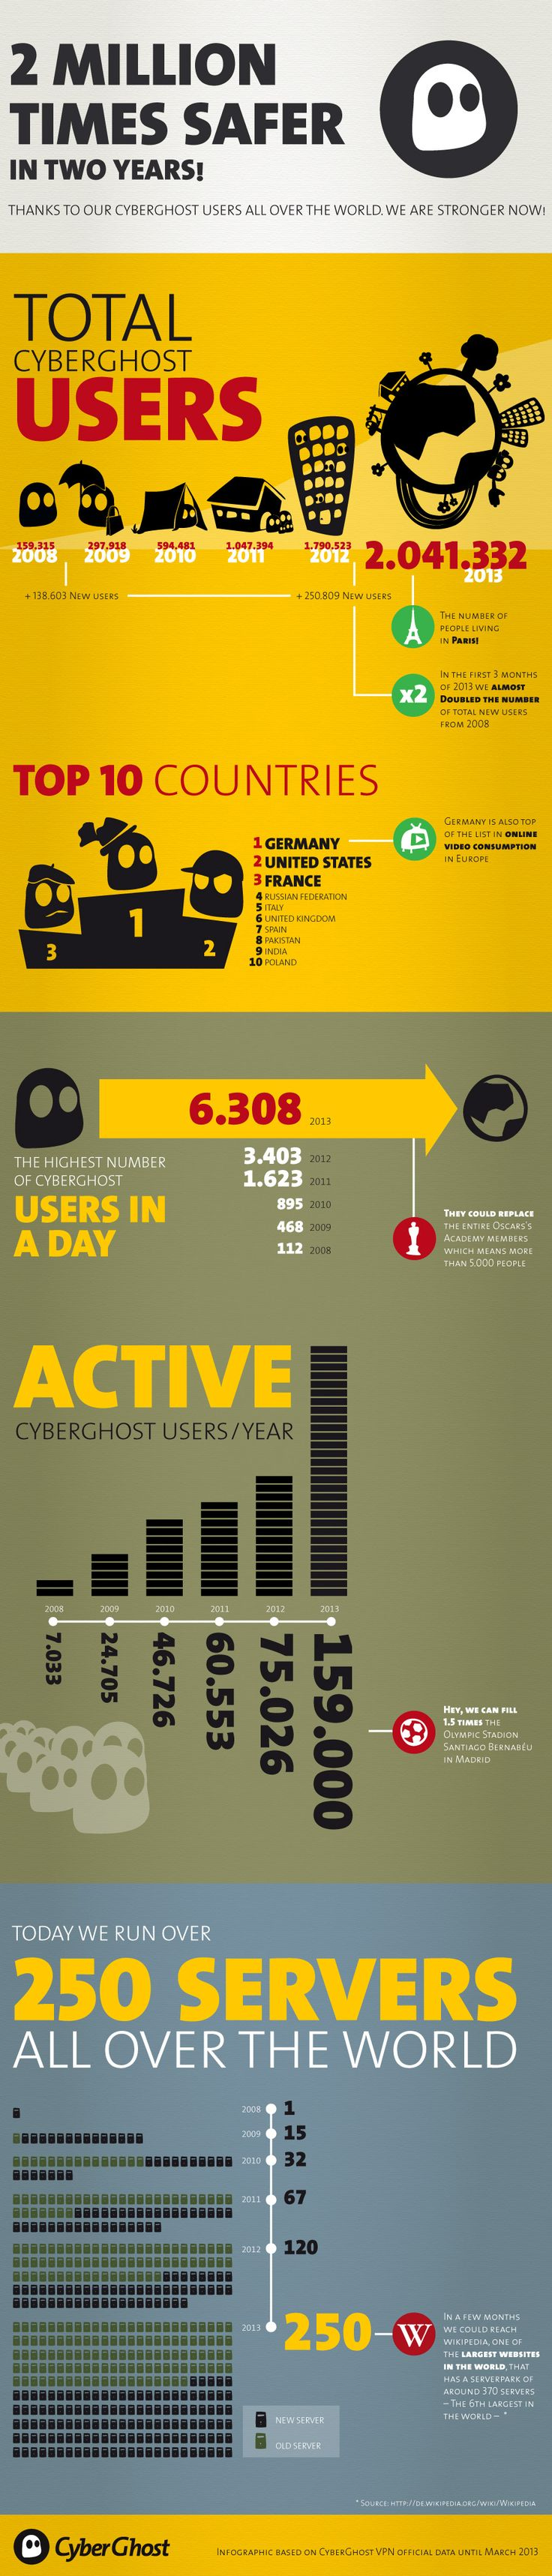 CyberGhost VPN evolution infographic!